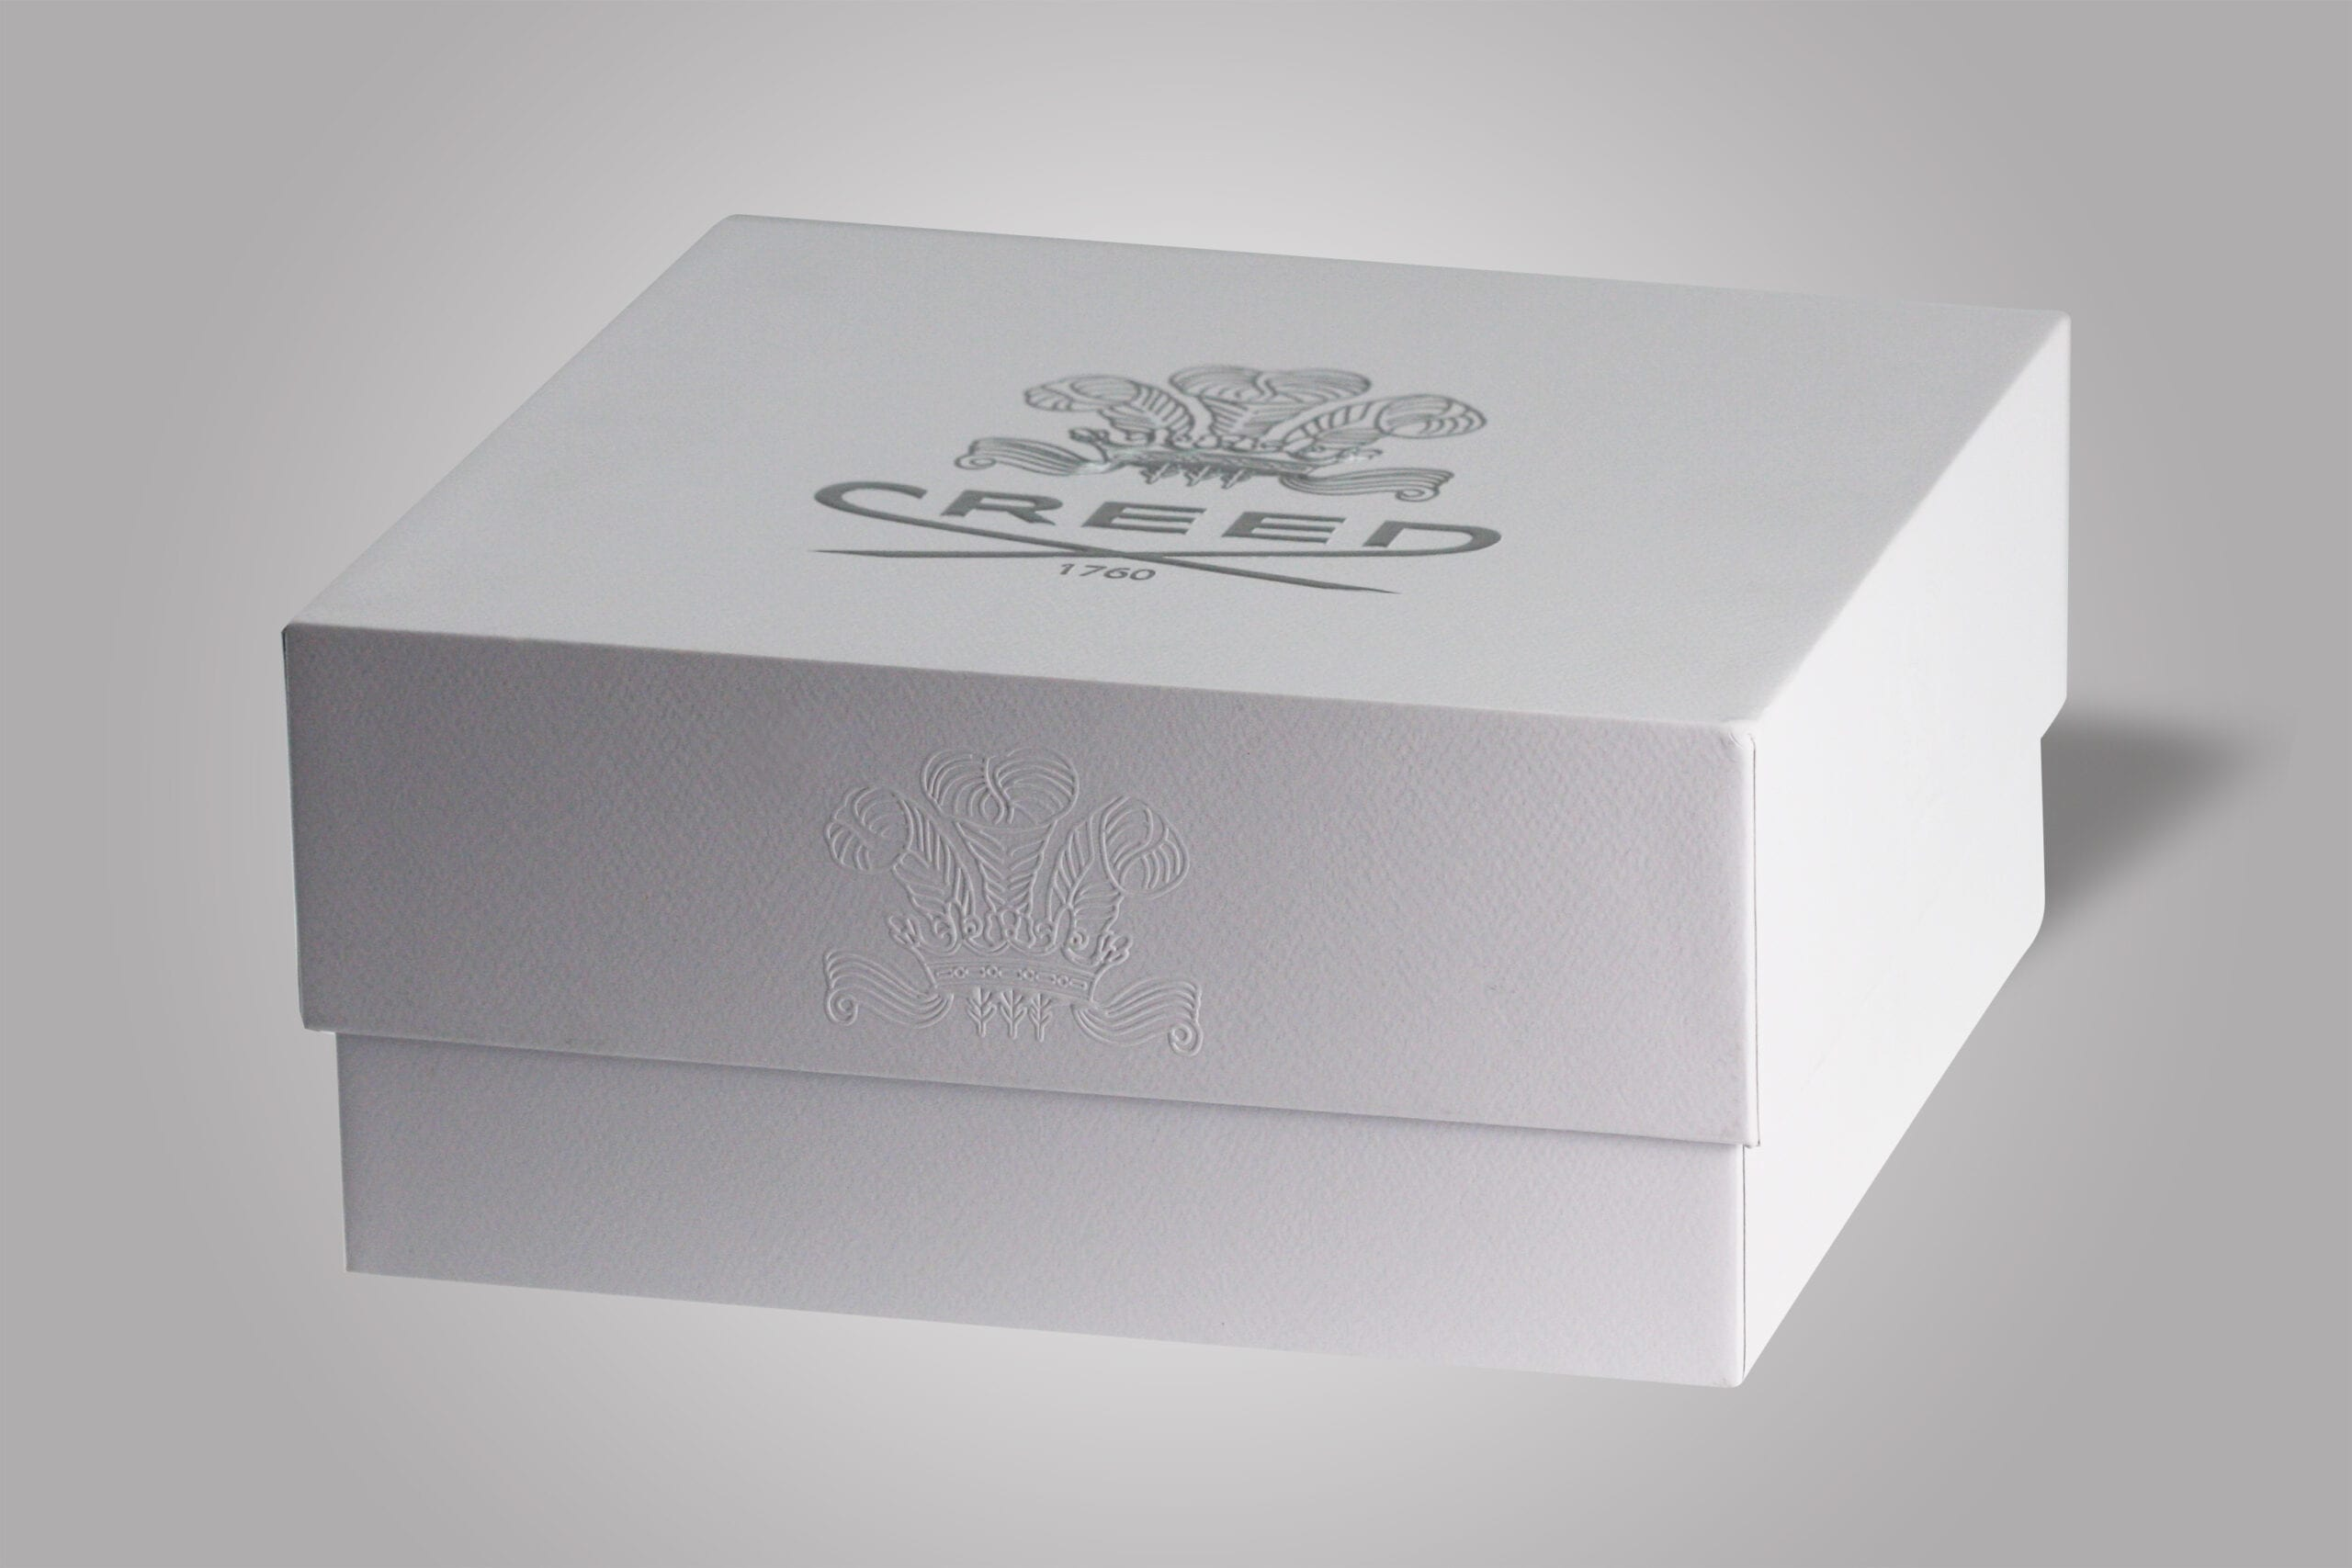 At PPD&G, we utilize numerous finishing methods to create the perfect custom packaging, and this custom rigid setup box exemplifies that, featuring an embossed logo on the front, as well as a silver logo on top that helps to present a high end feel for customers.